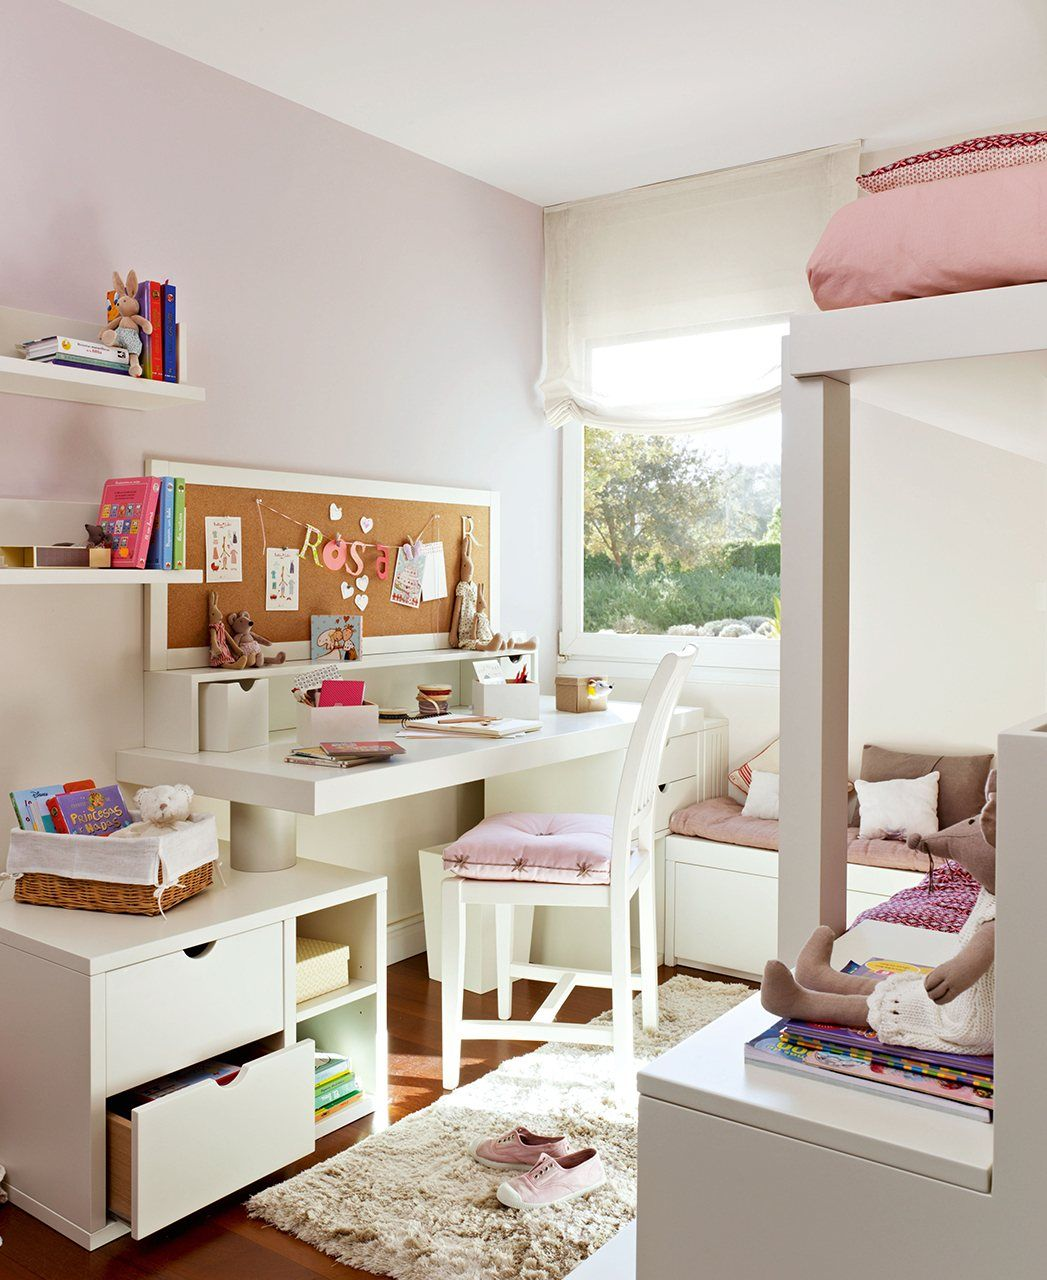 Cute little girls room in shades of